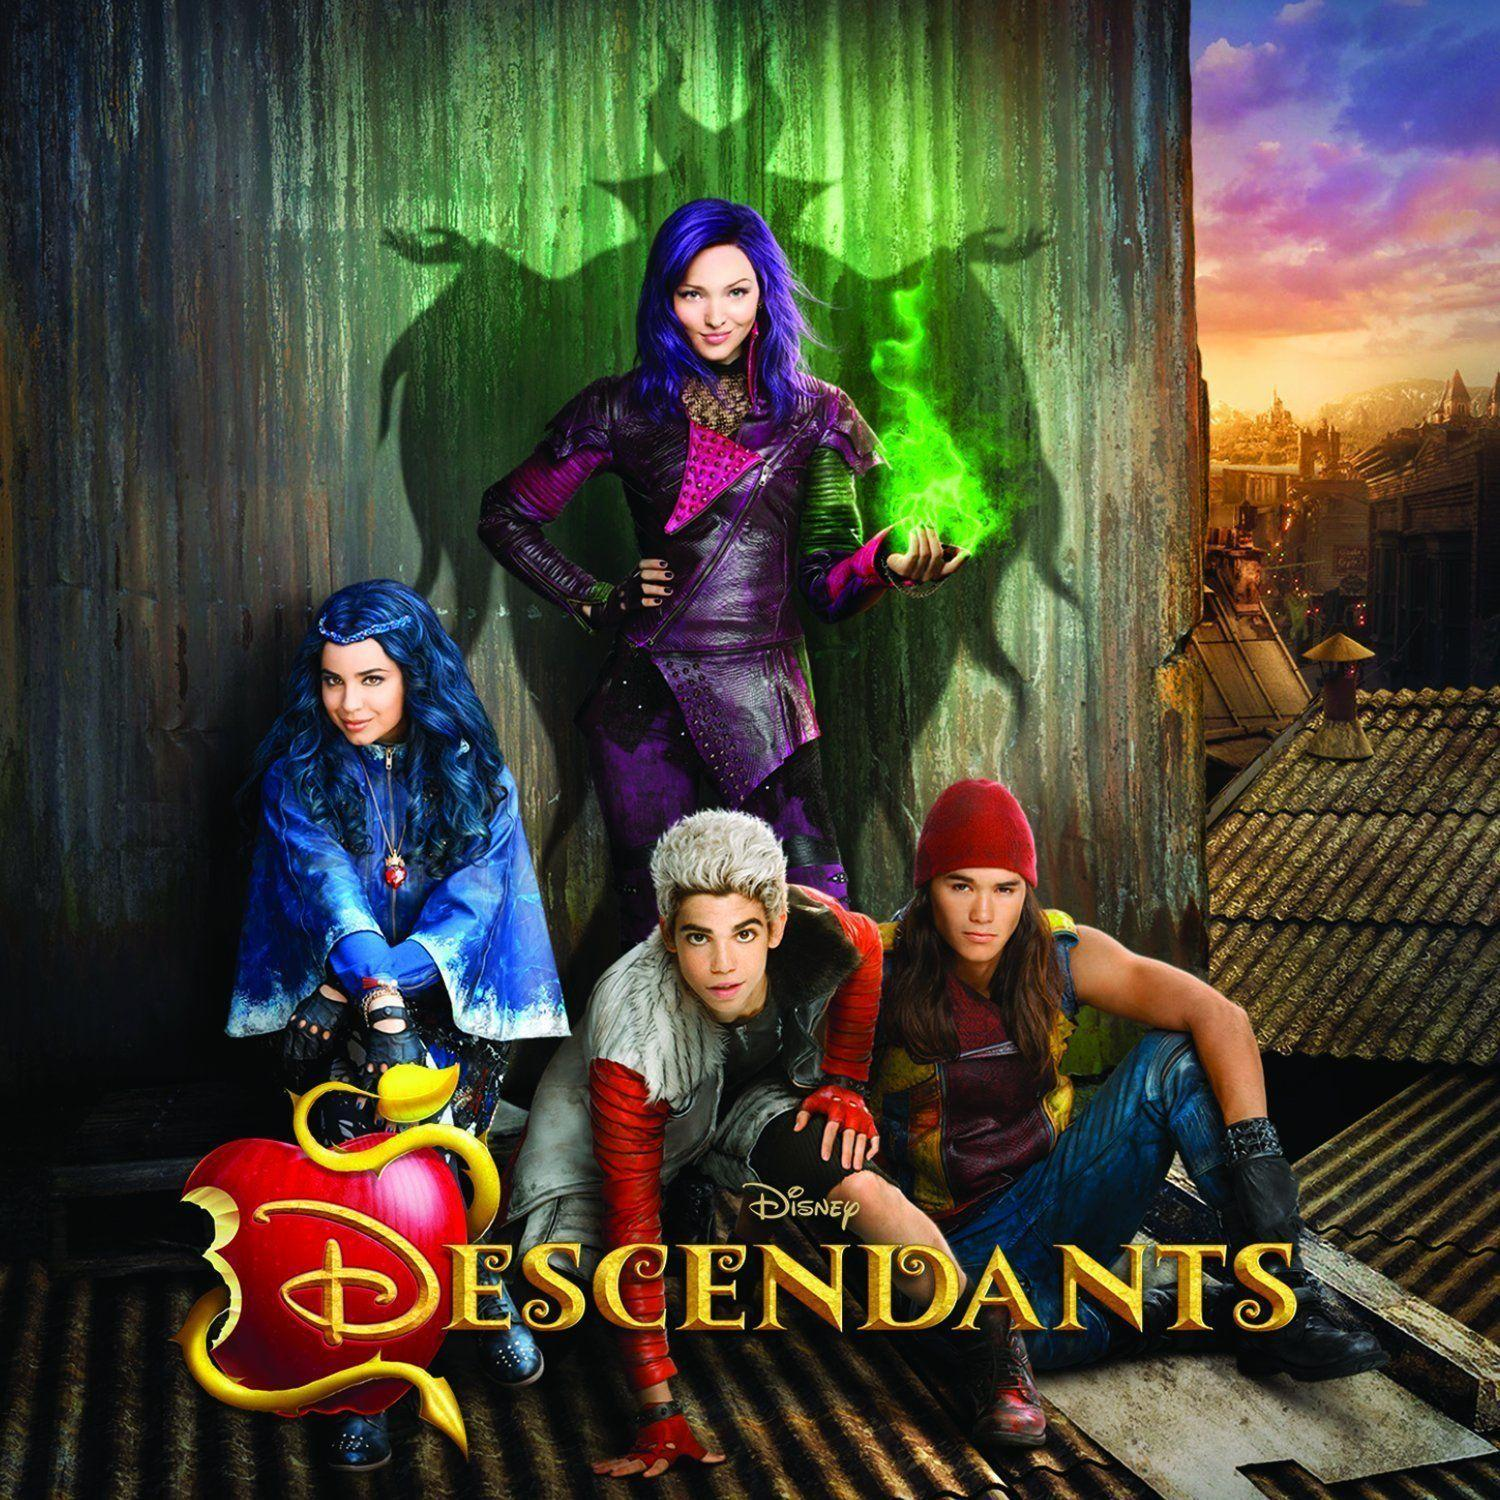 Descendants Wallpaper Background, 45 High Quality Descendants .